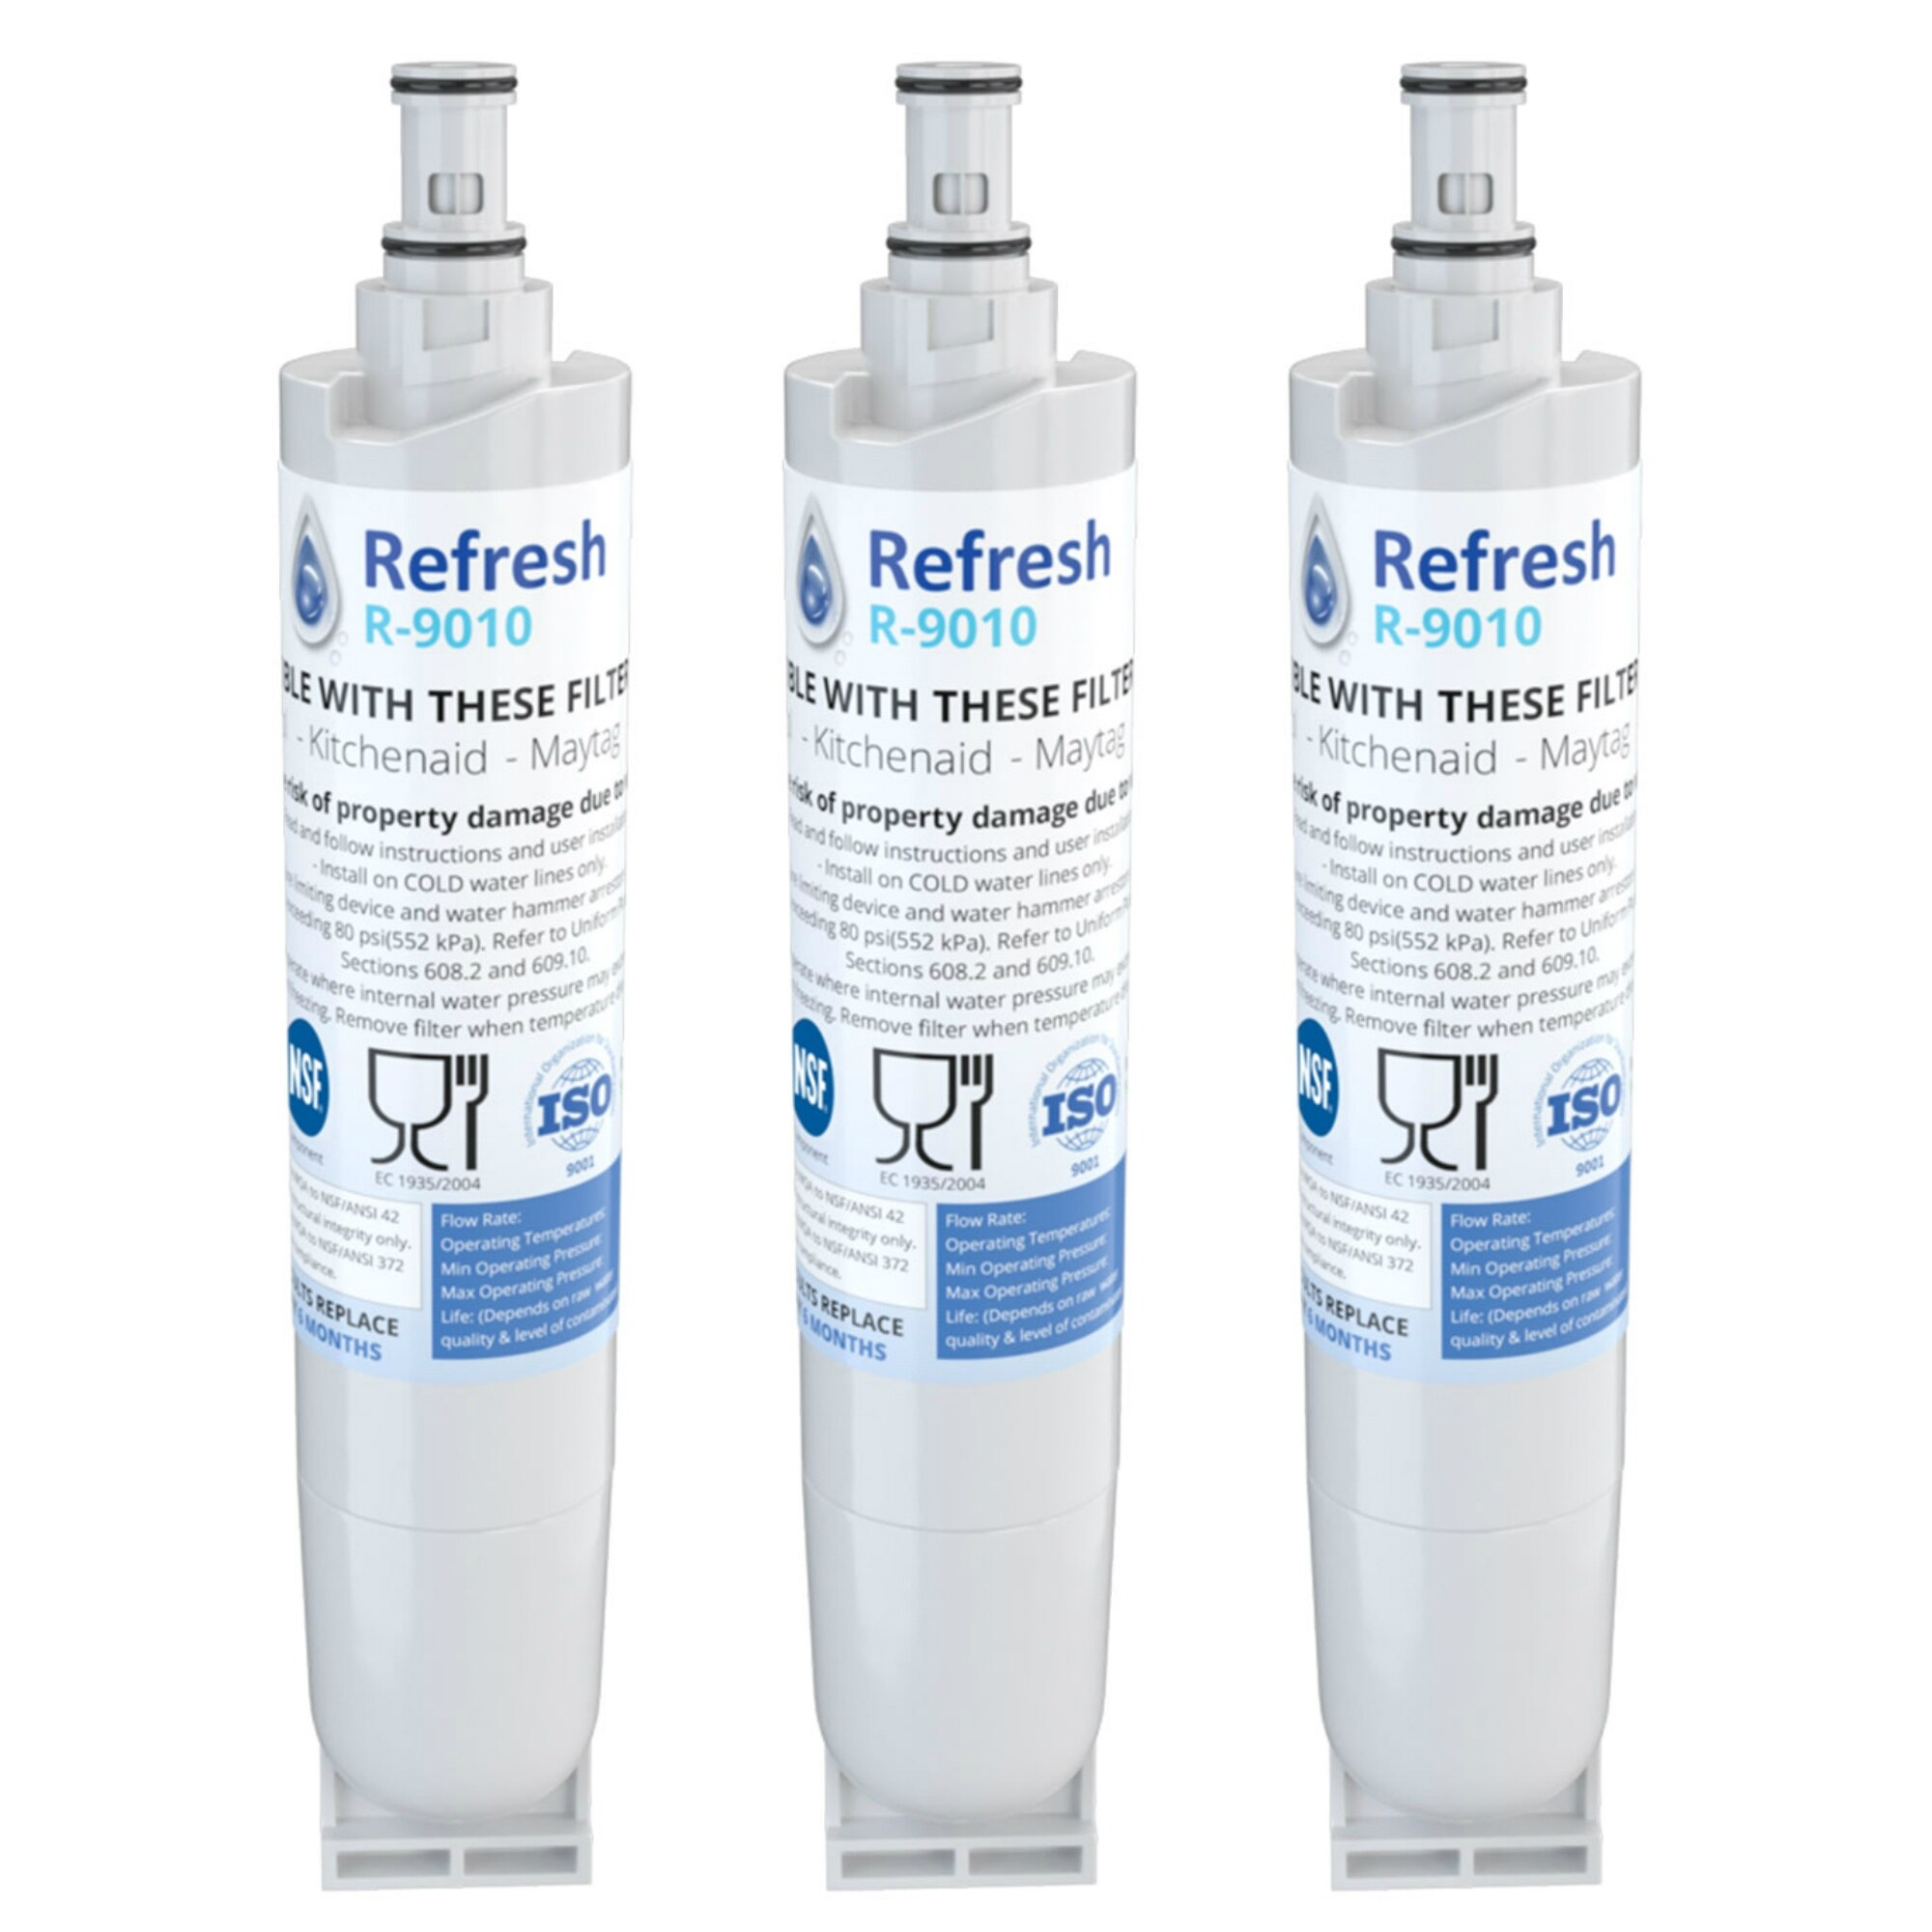 Refresh Replacement Water Filter Fits Whirlpool ED5FHGXKQ02 Refrigerators